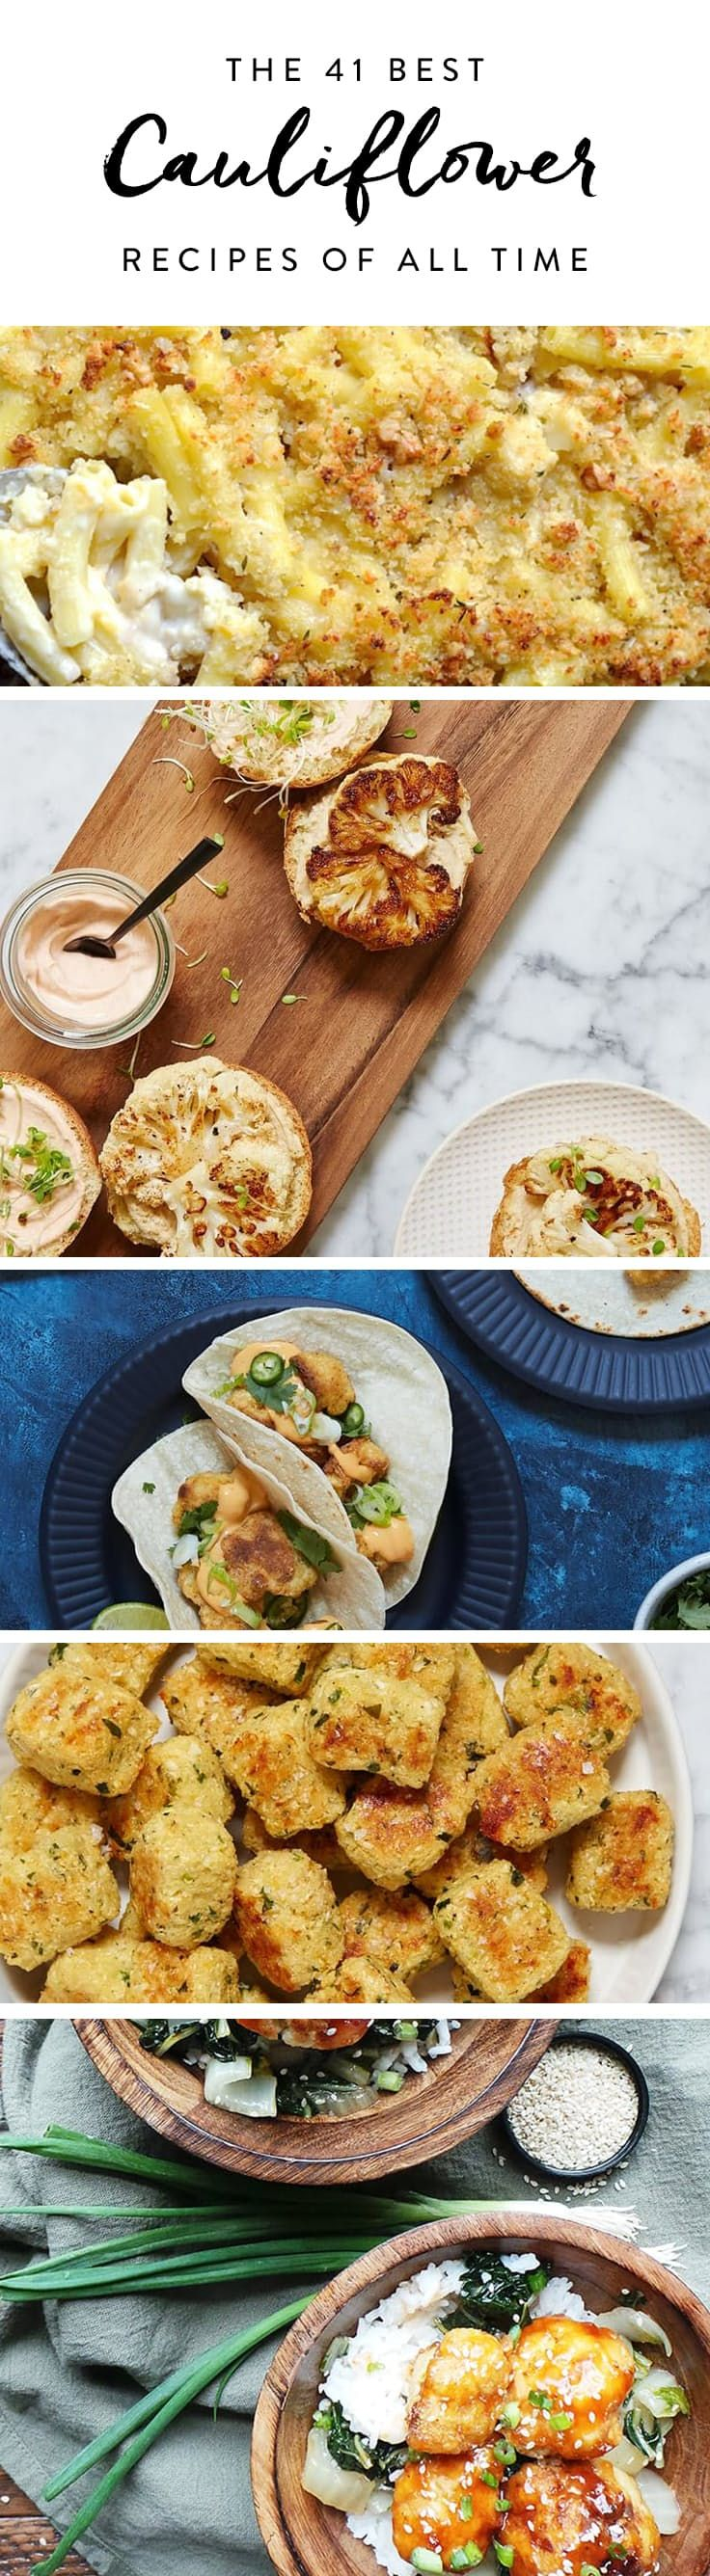 The 41 Best Cauliflower Recipes of All Time via @PureWow